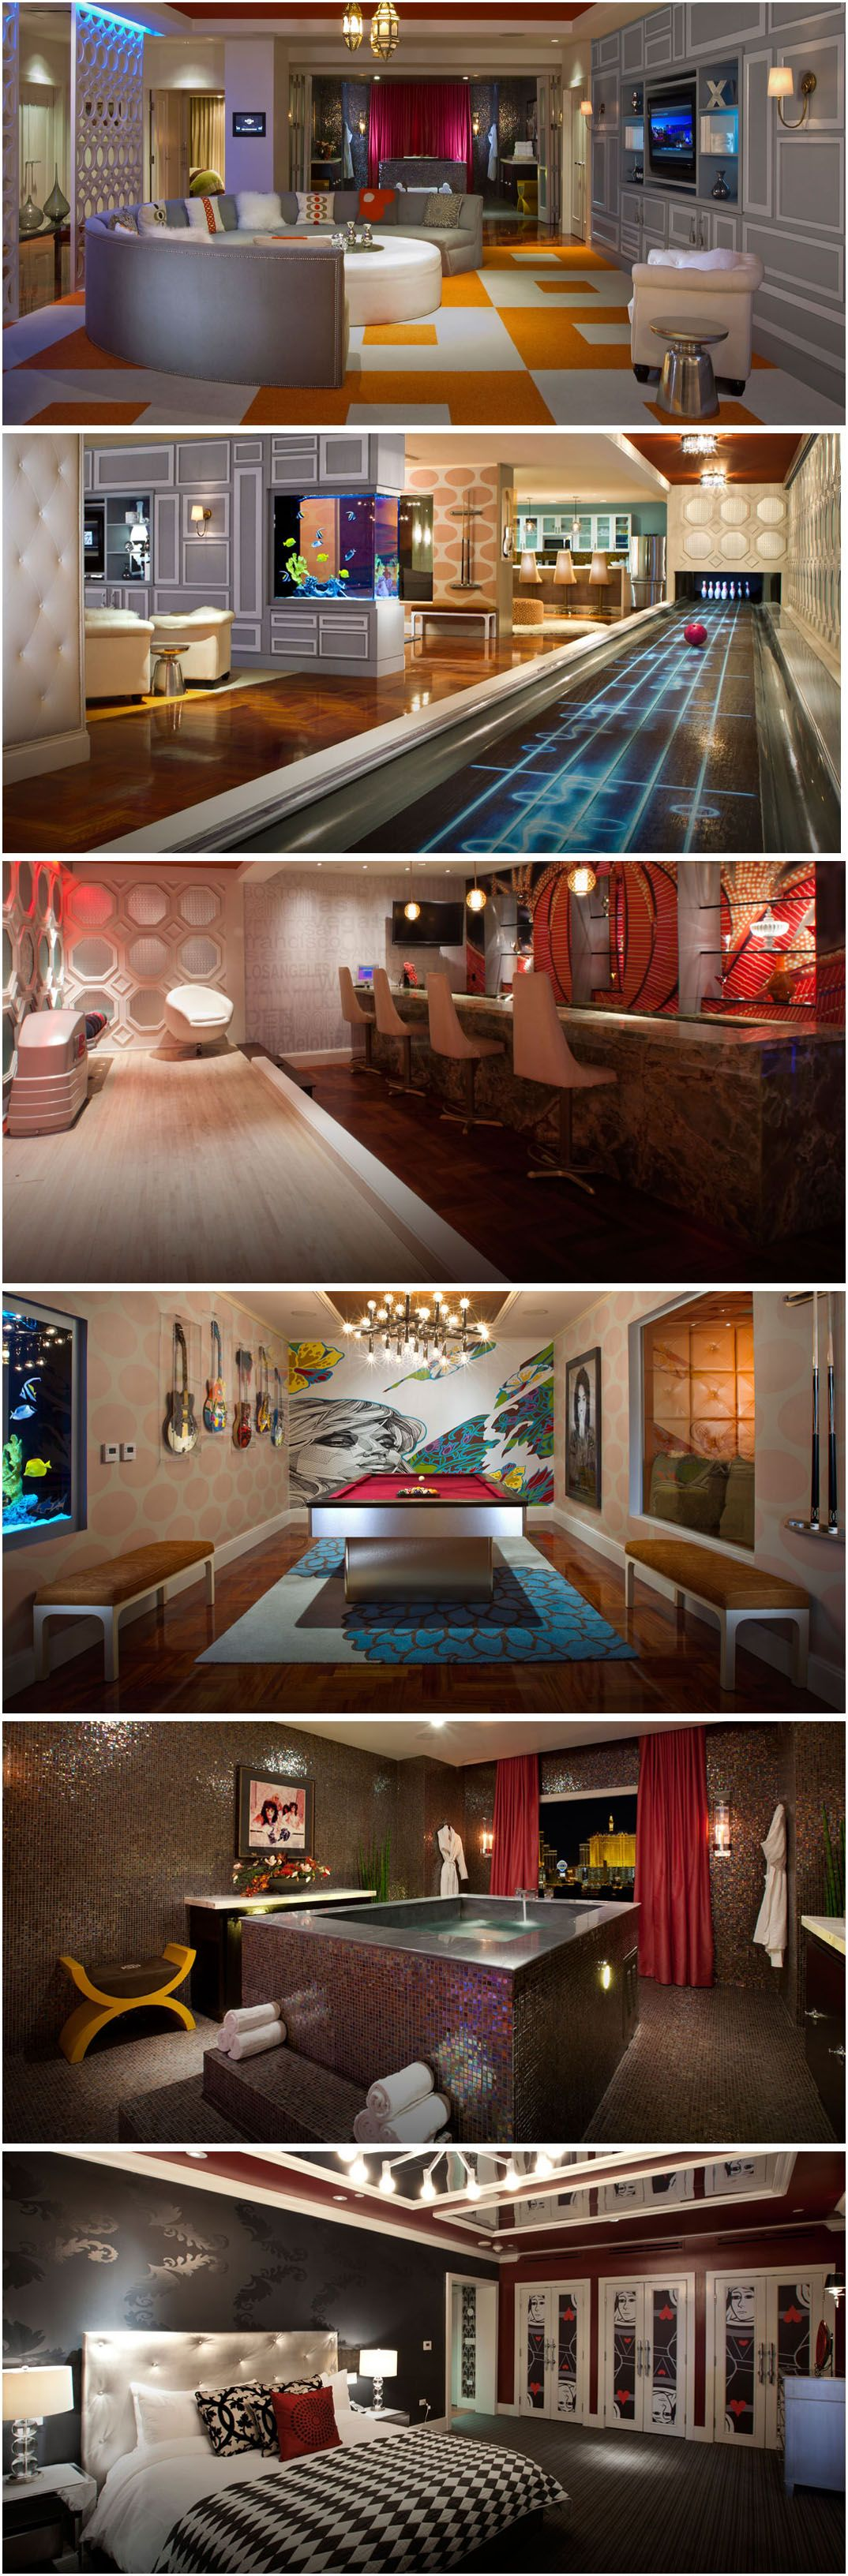 Las Vegas Strip 2 Bedroom Suites The 1 And 2 Bedroom Suites And Penthouses At Sky Suites Feature